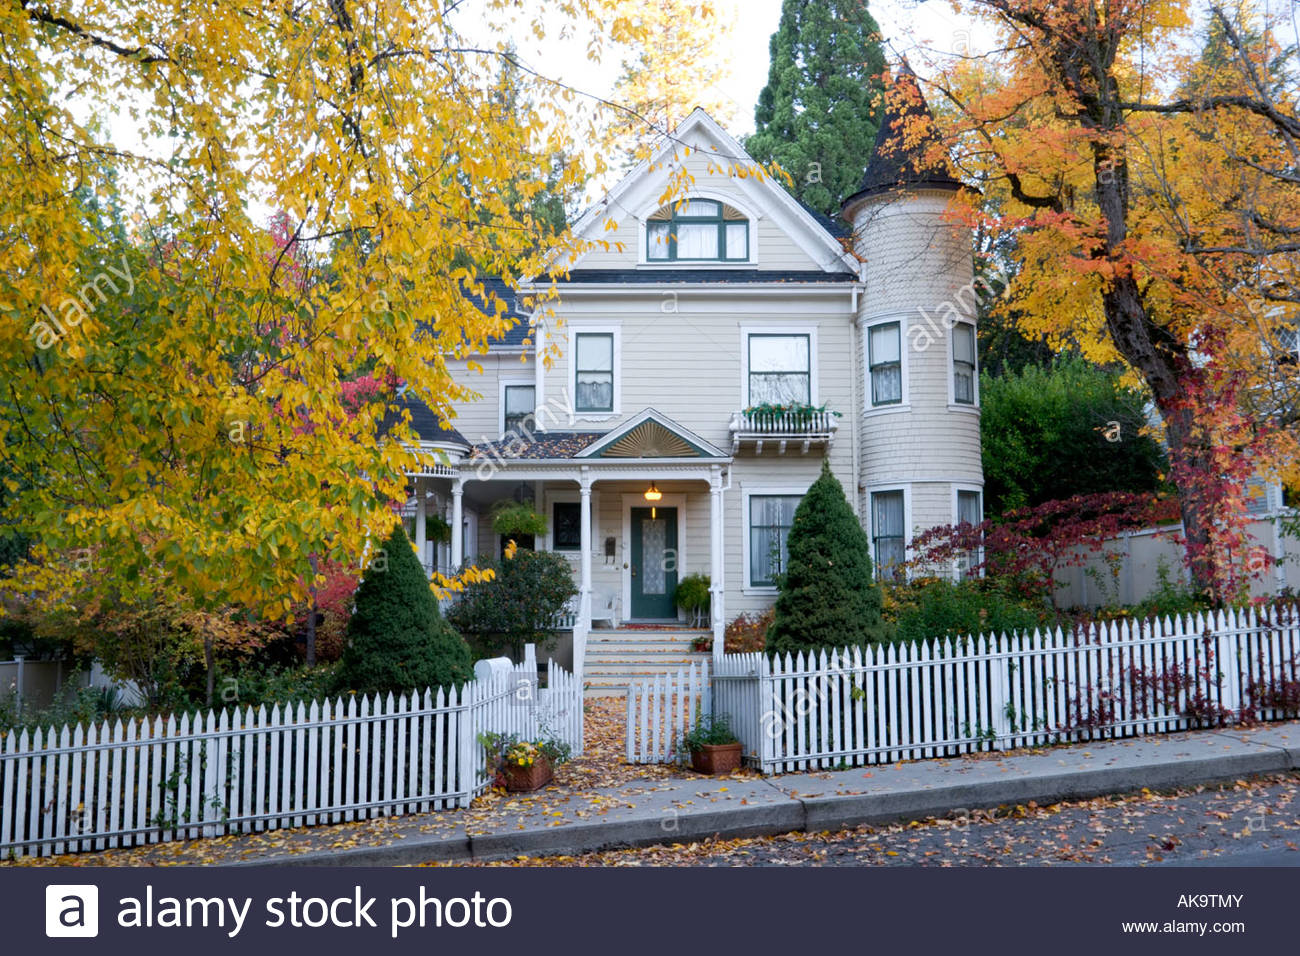 Victorian Home with Fall Foliage Nevada City California - Stock Image